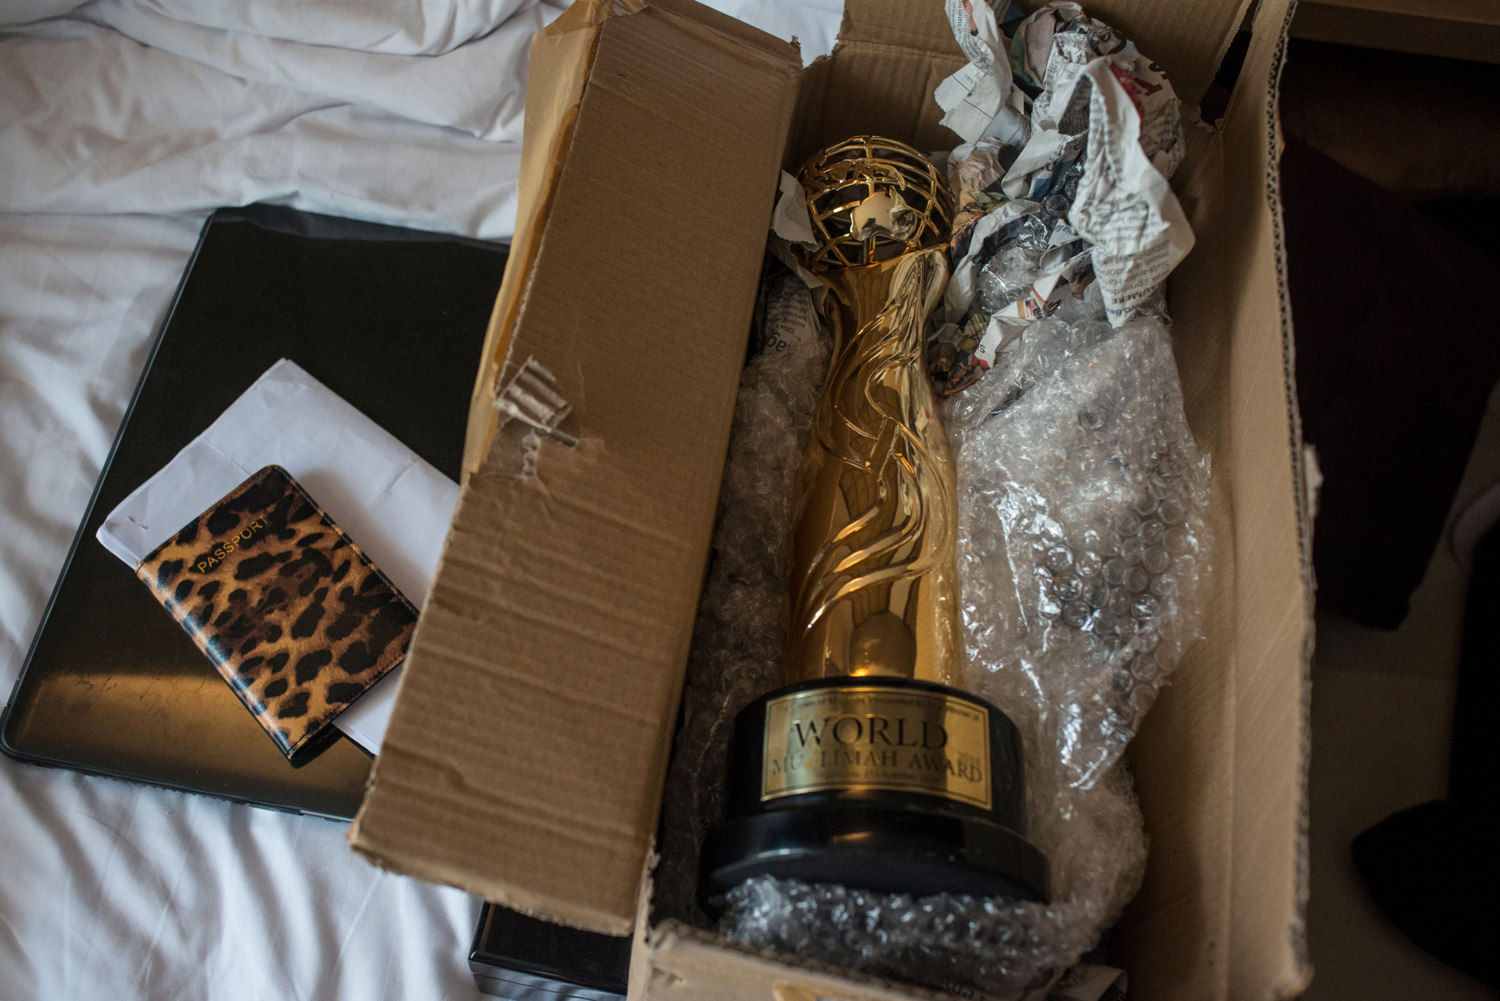 The Miss Muslimah 2014 trophy sits on Fatma Ben Guefrache of Tunisia's bed as she packs to leave Indonesia.